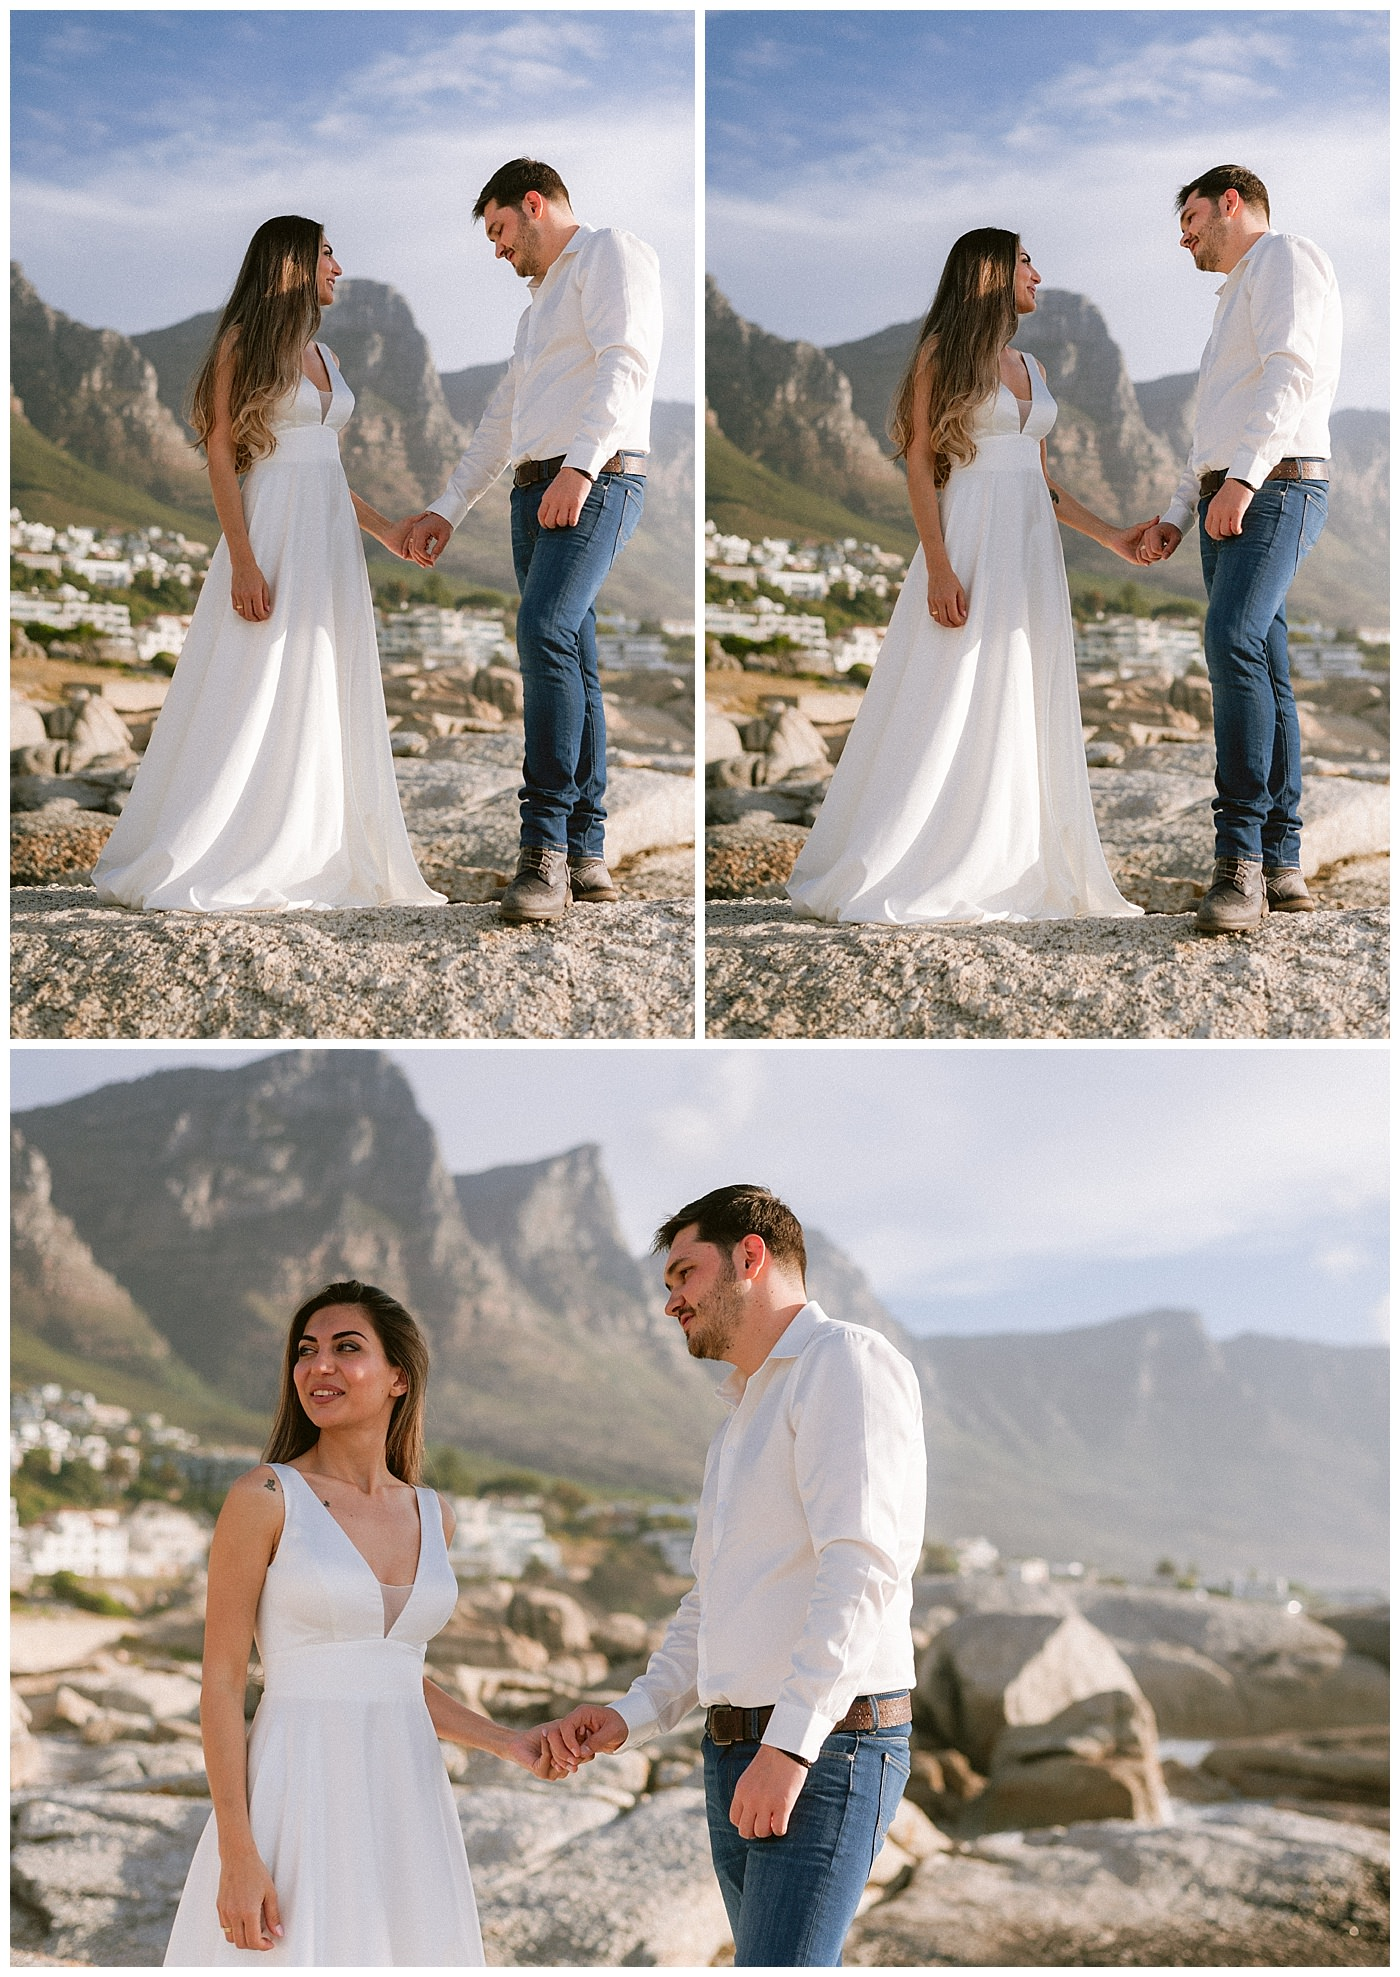 Cape Town beach wedding photography